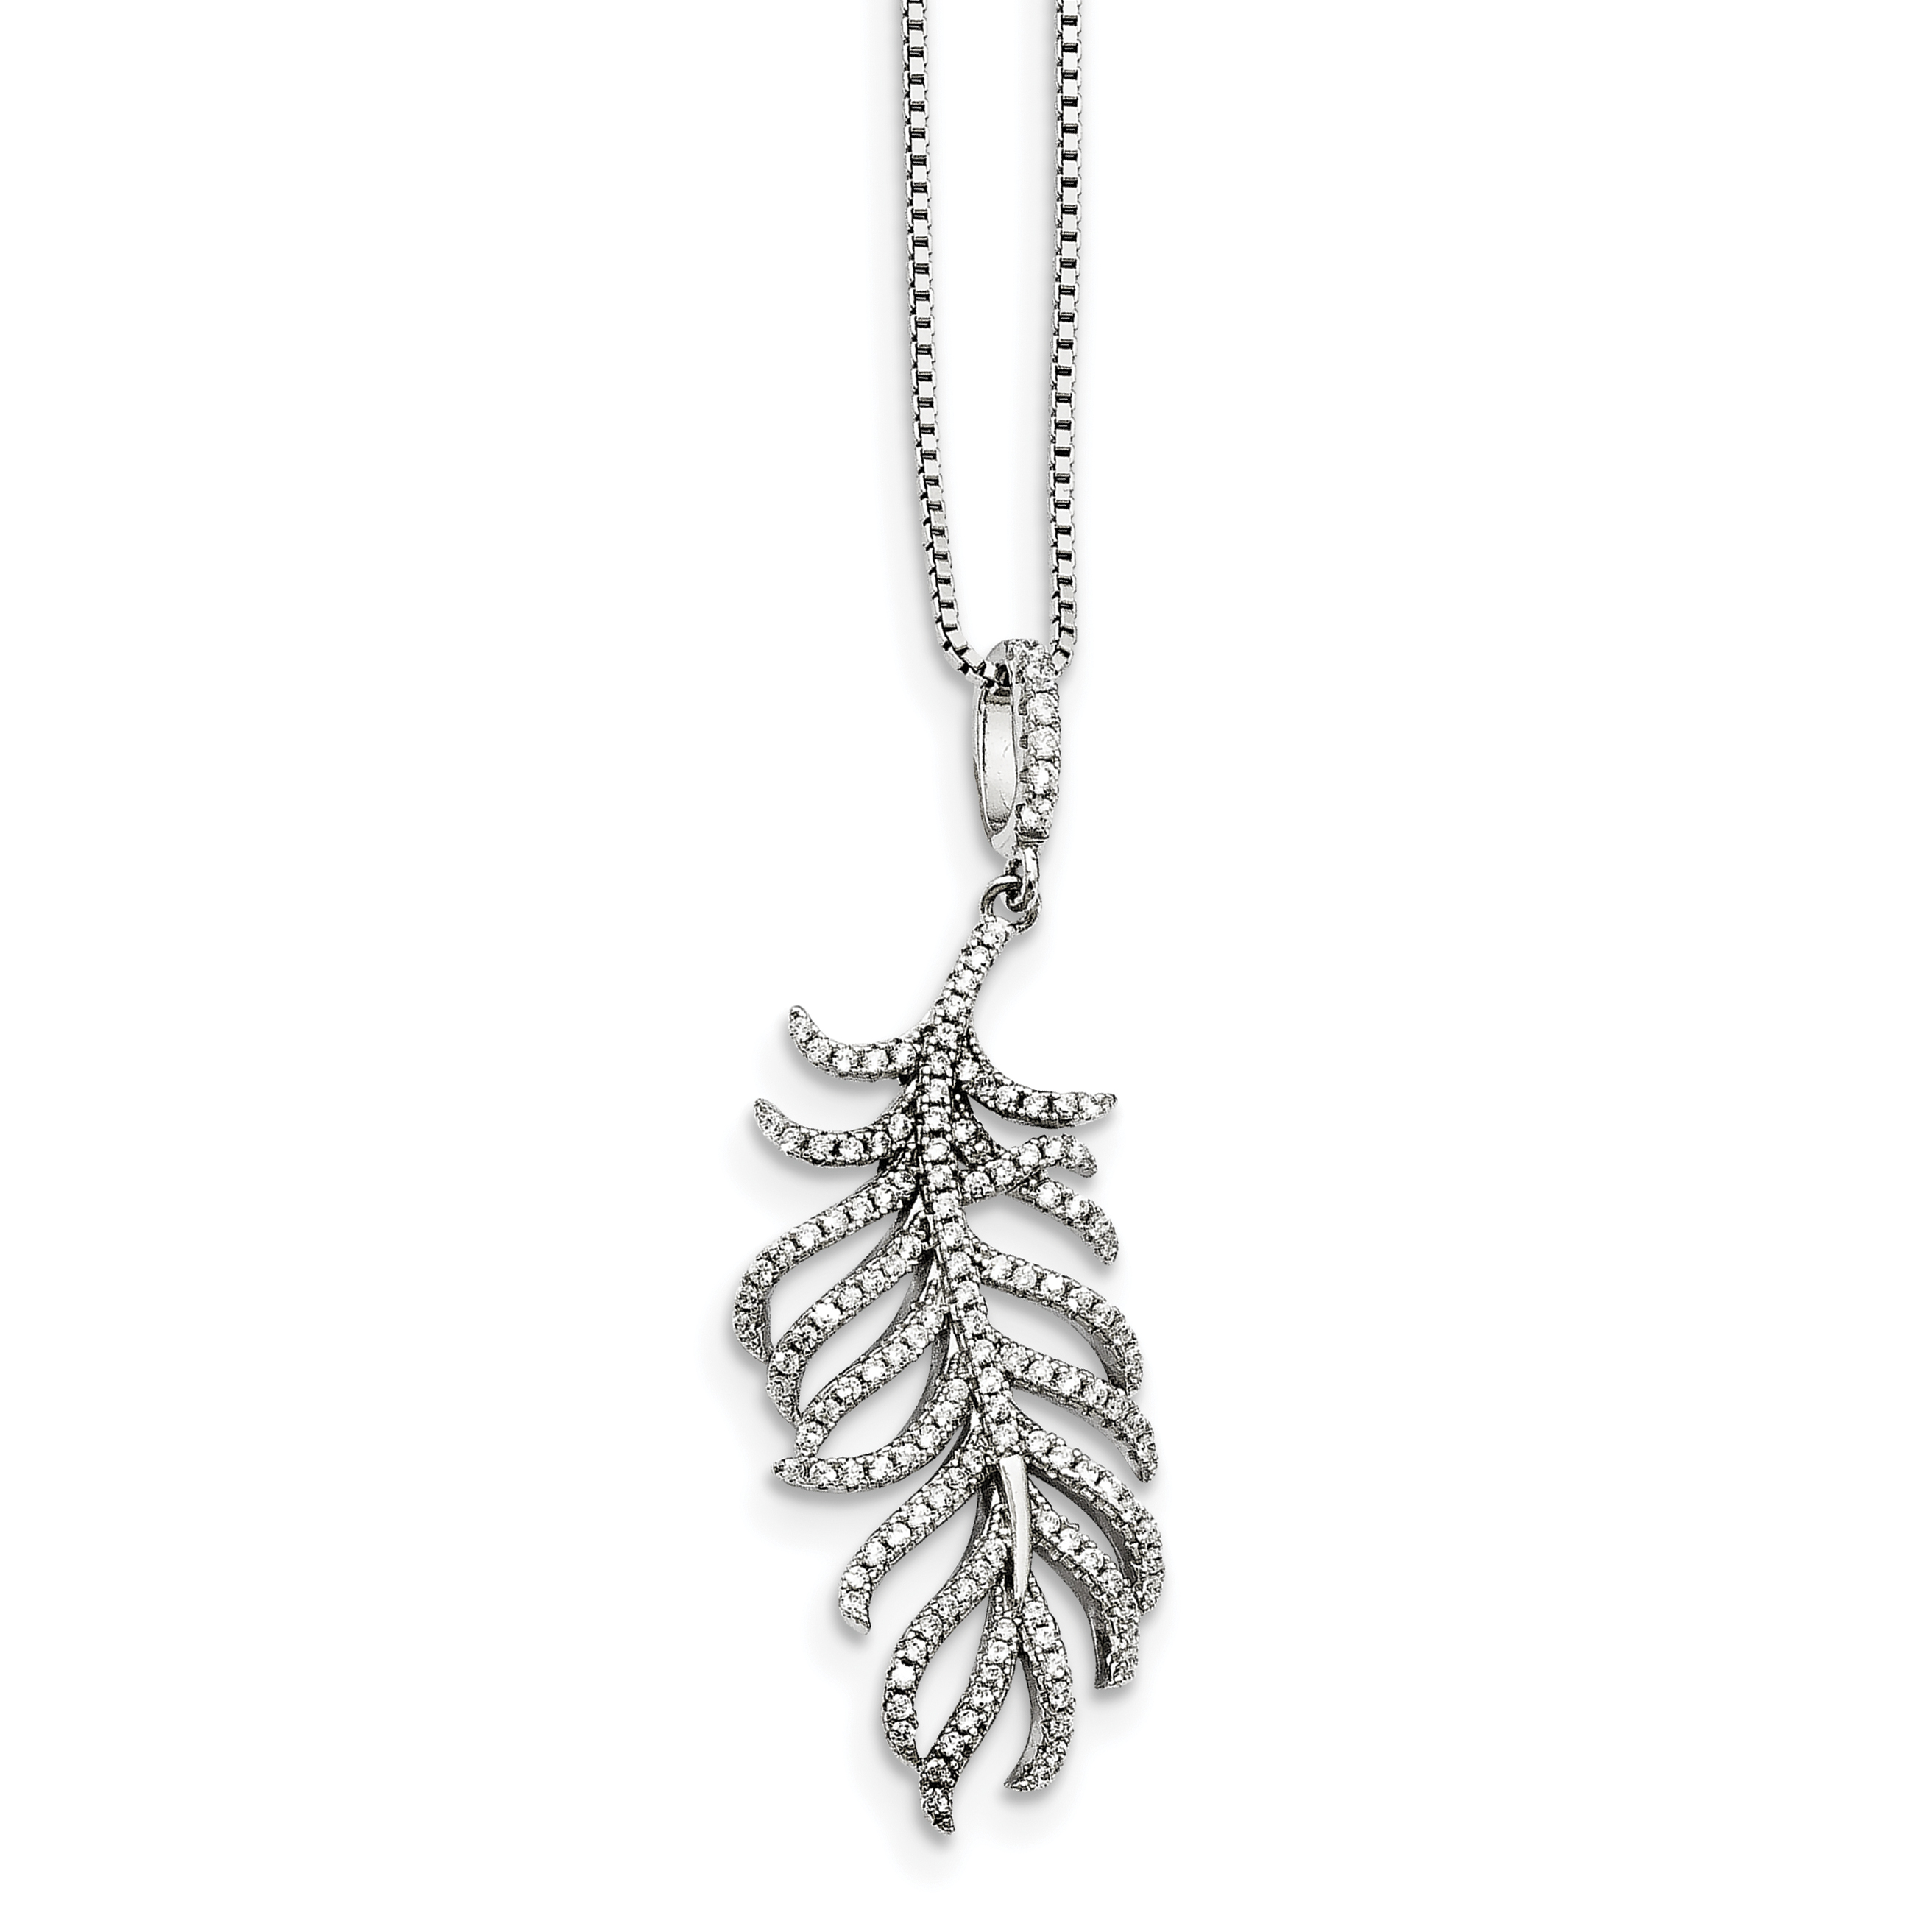 925 Sterling Silver Cubic Zirconia Cz Feather Chain Necklace Pendant Charm Wing Fine Jewelry Gifts For Women For Her - image 4 de 4